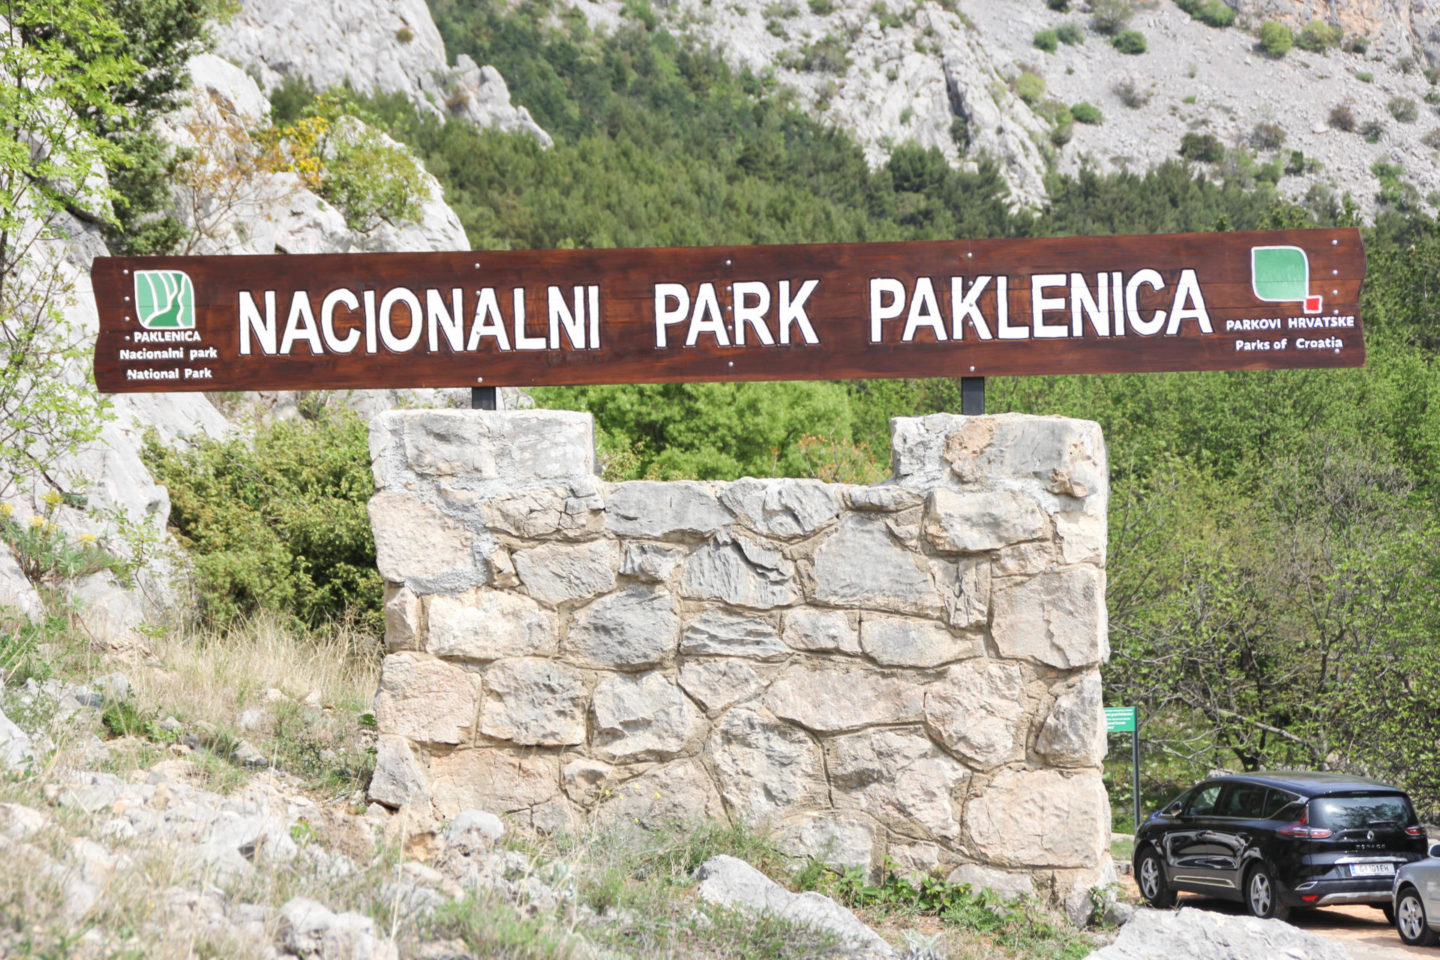 Nationalni Park Paklenica